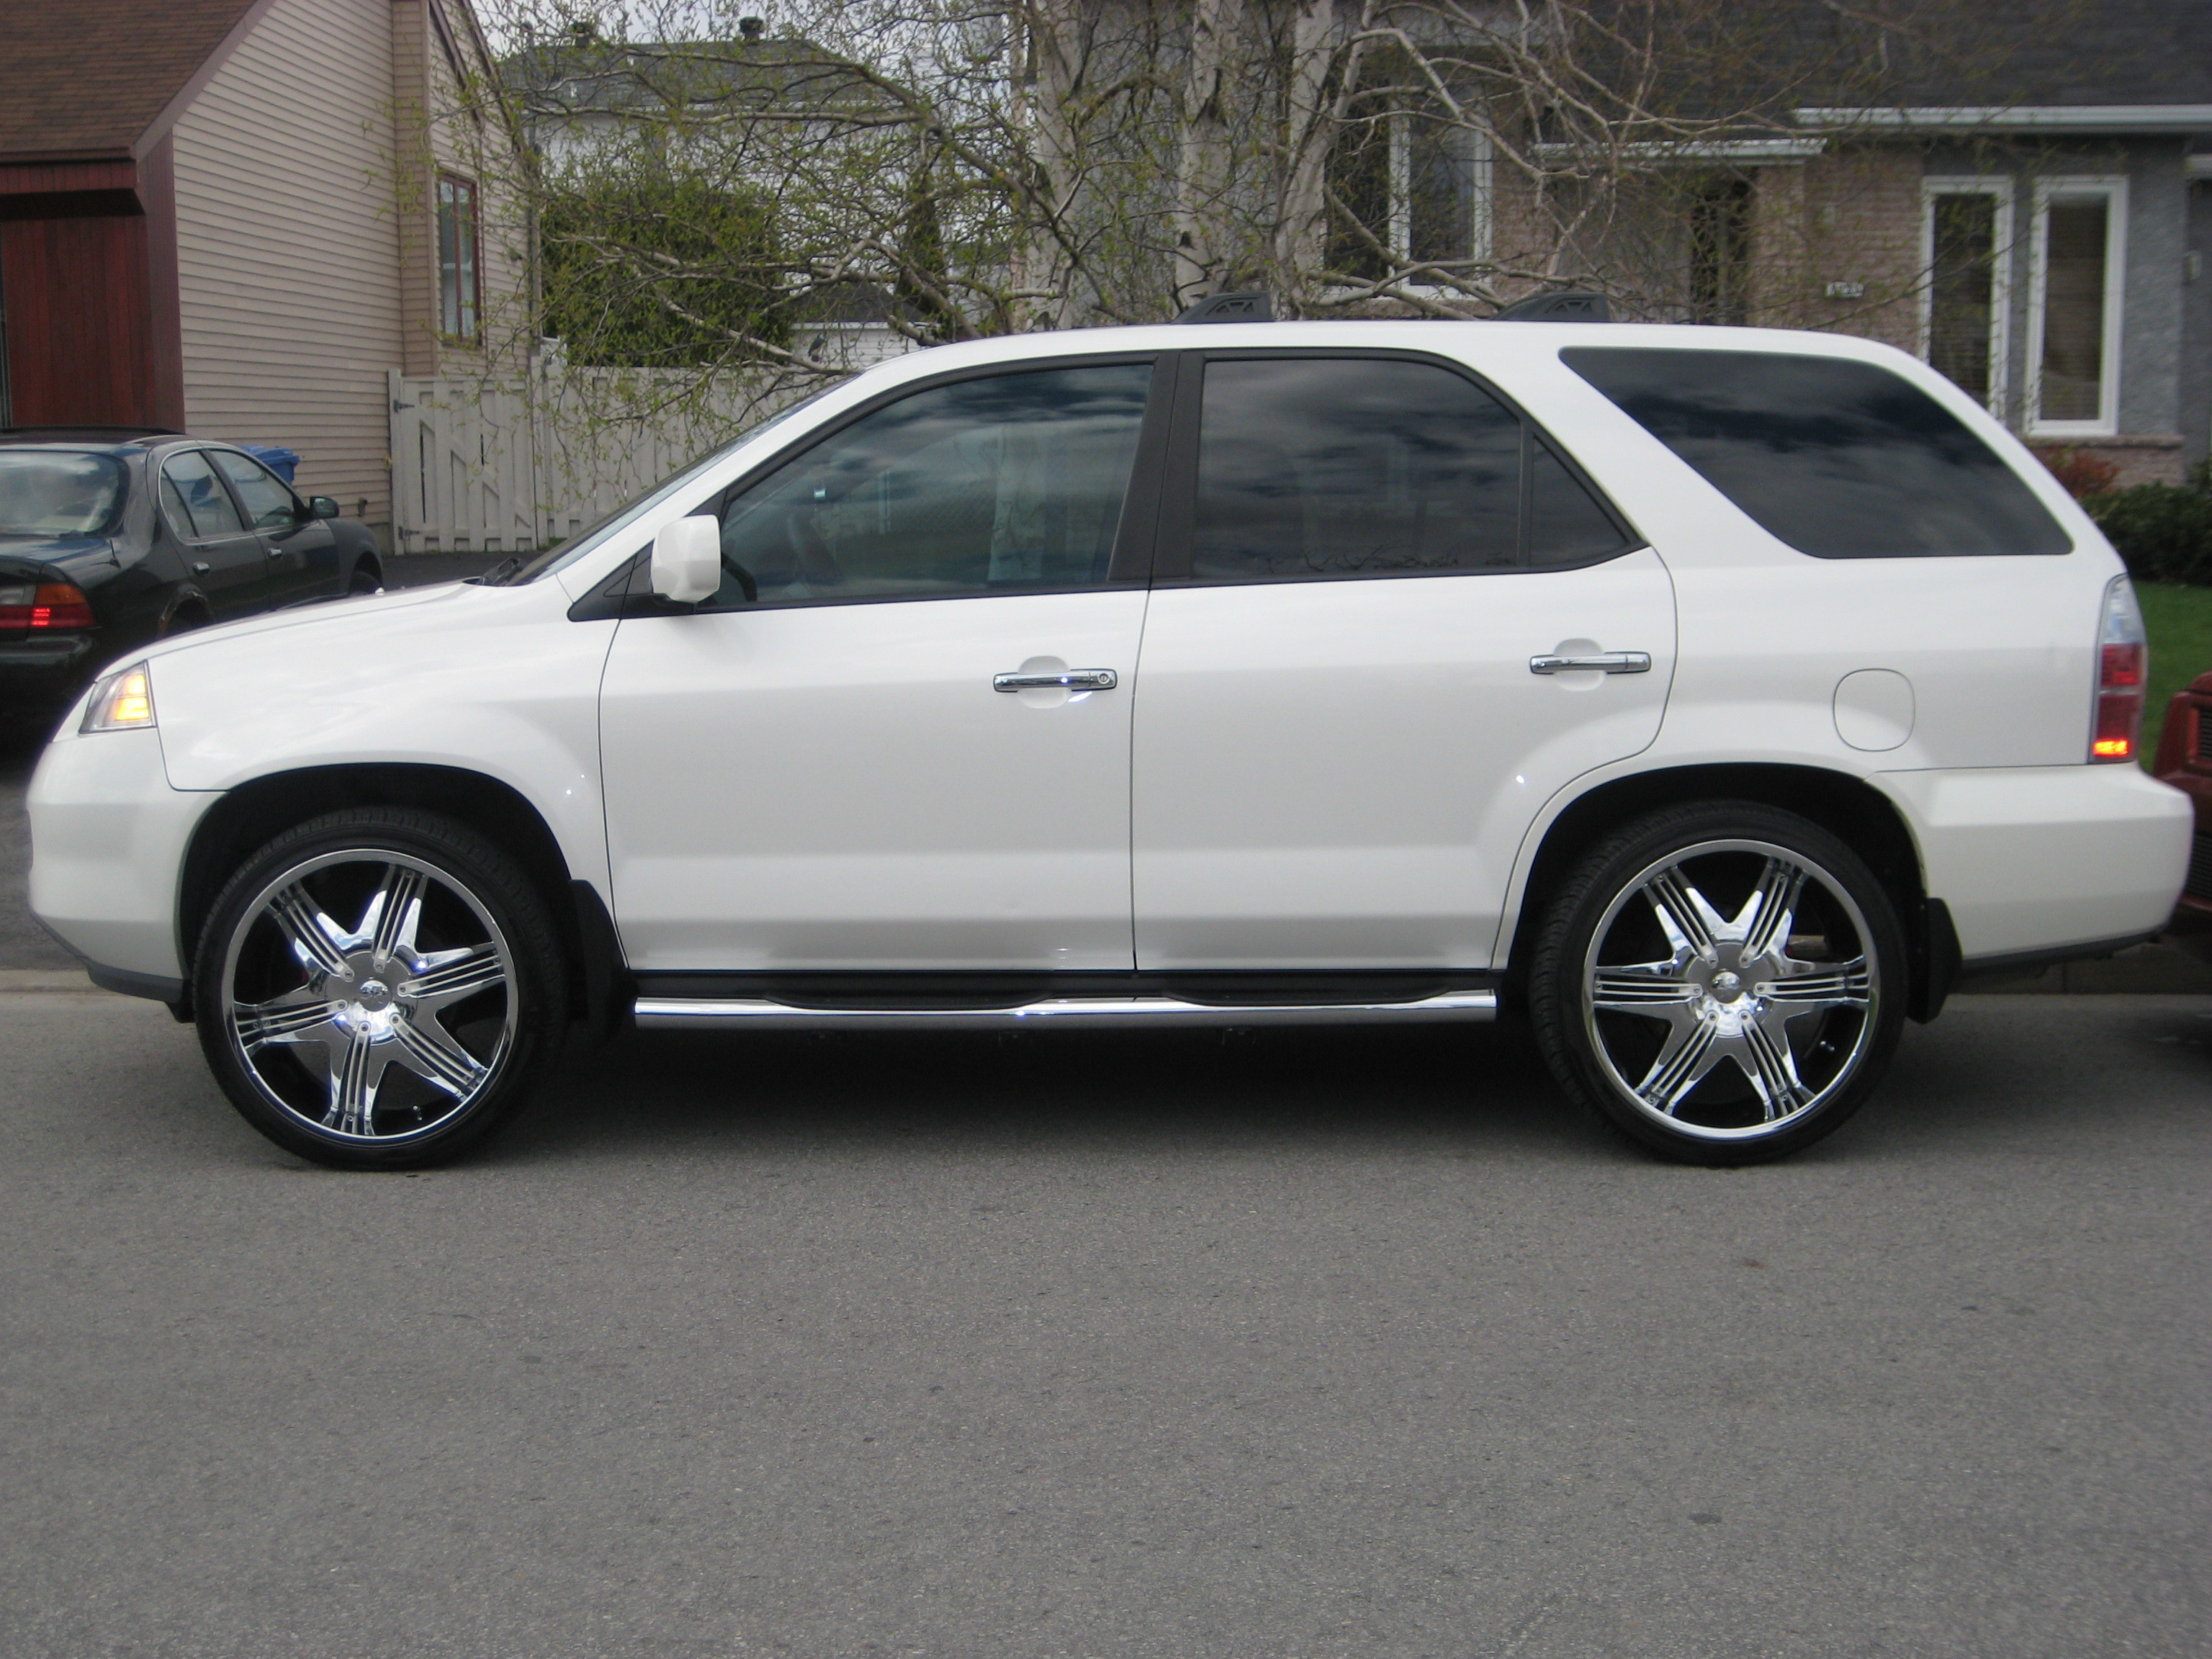 Hyundai Of Bedford >> thebigstan 2004 Acura MDX Specs, Photos, Modification Info at CarDomain